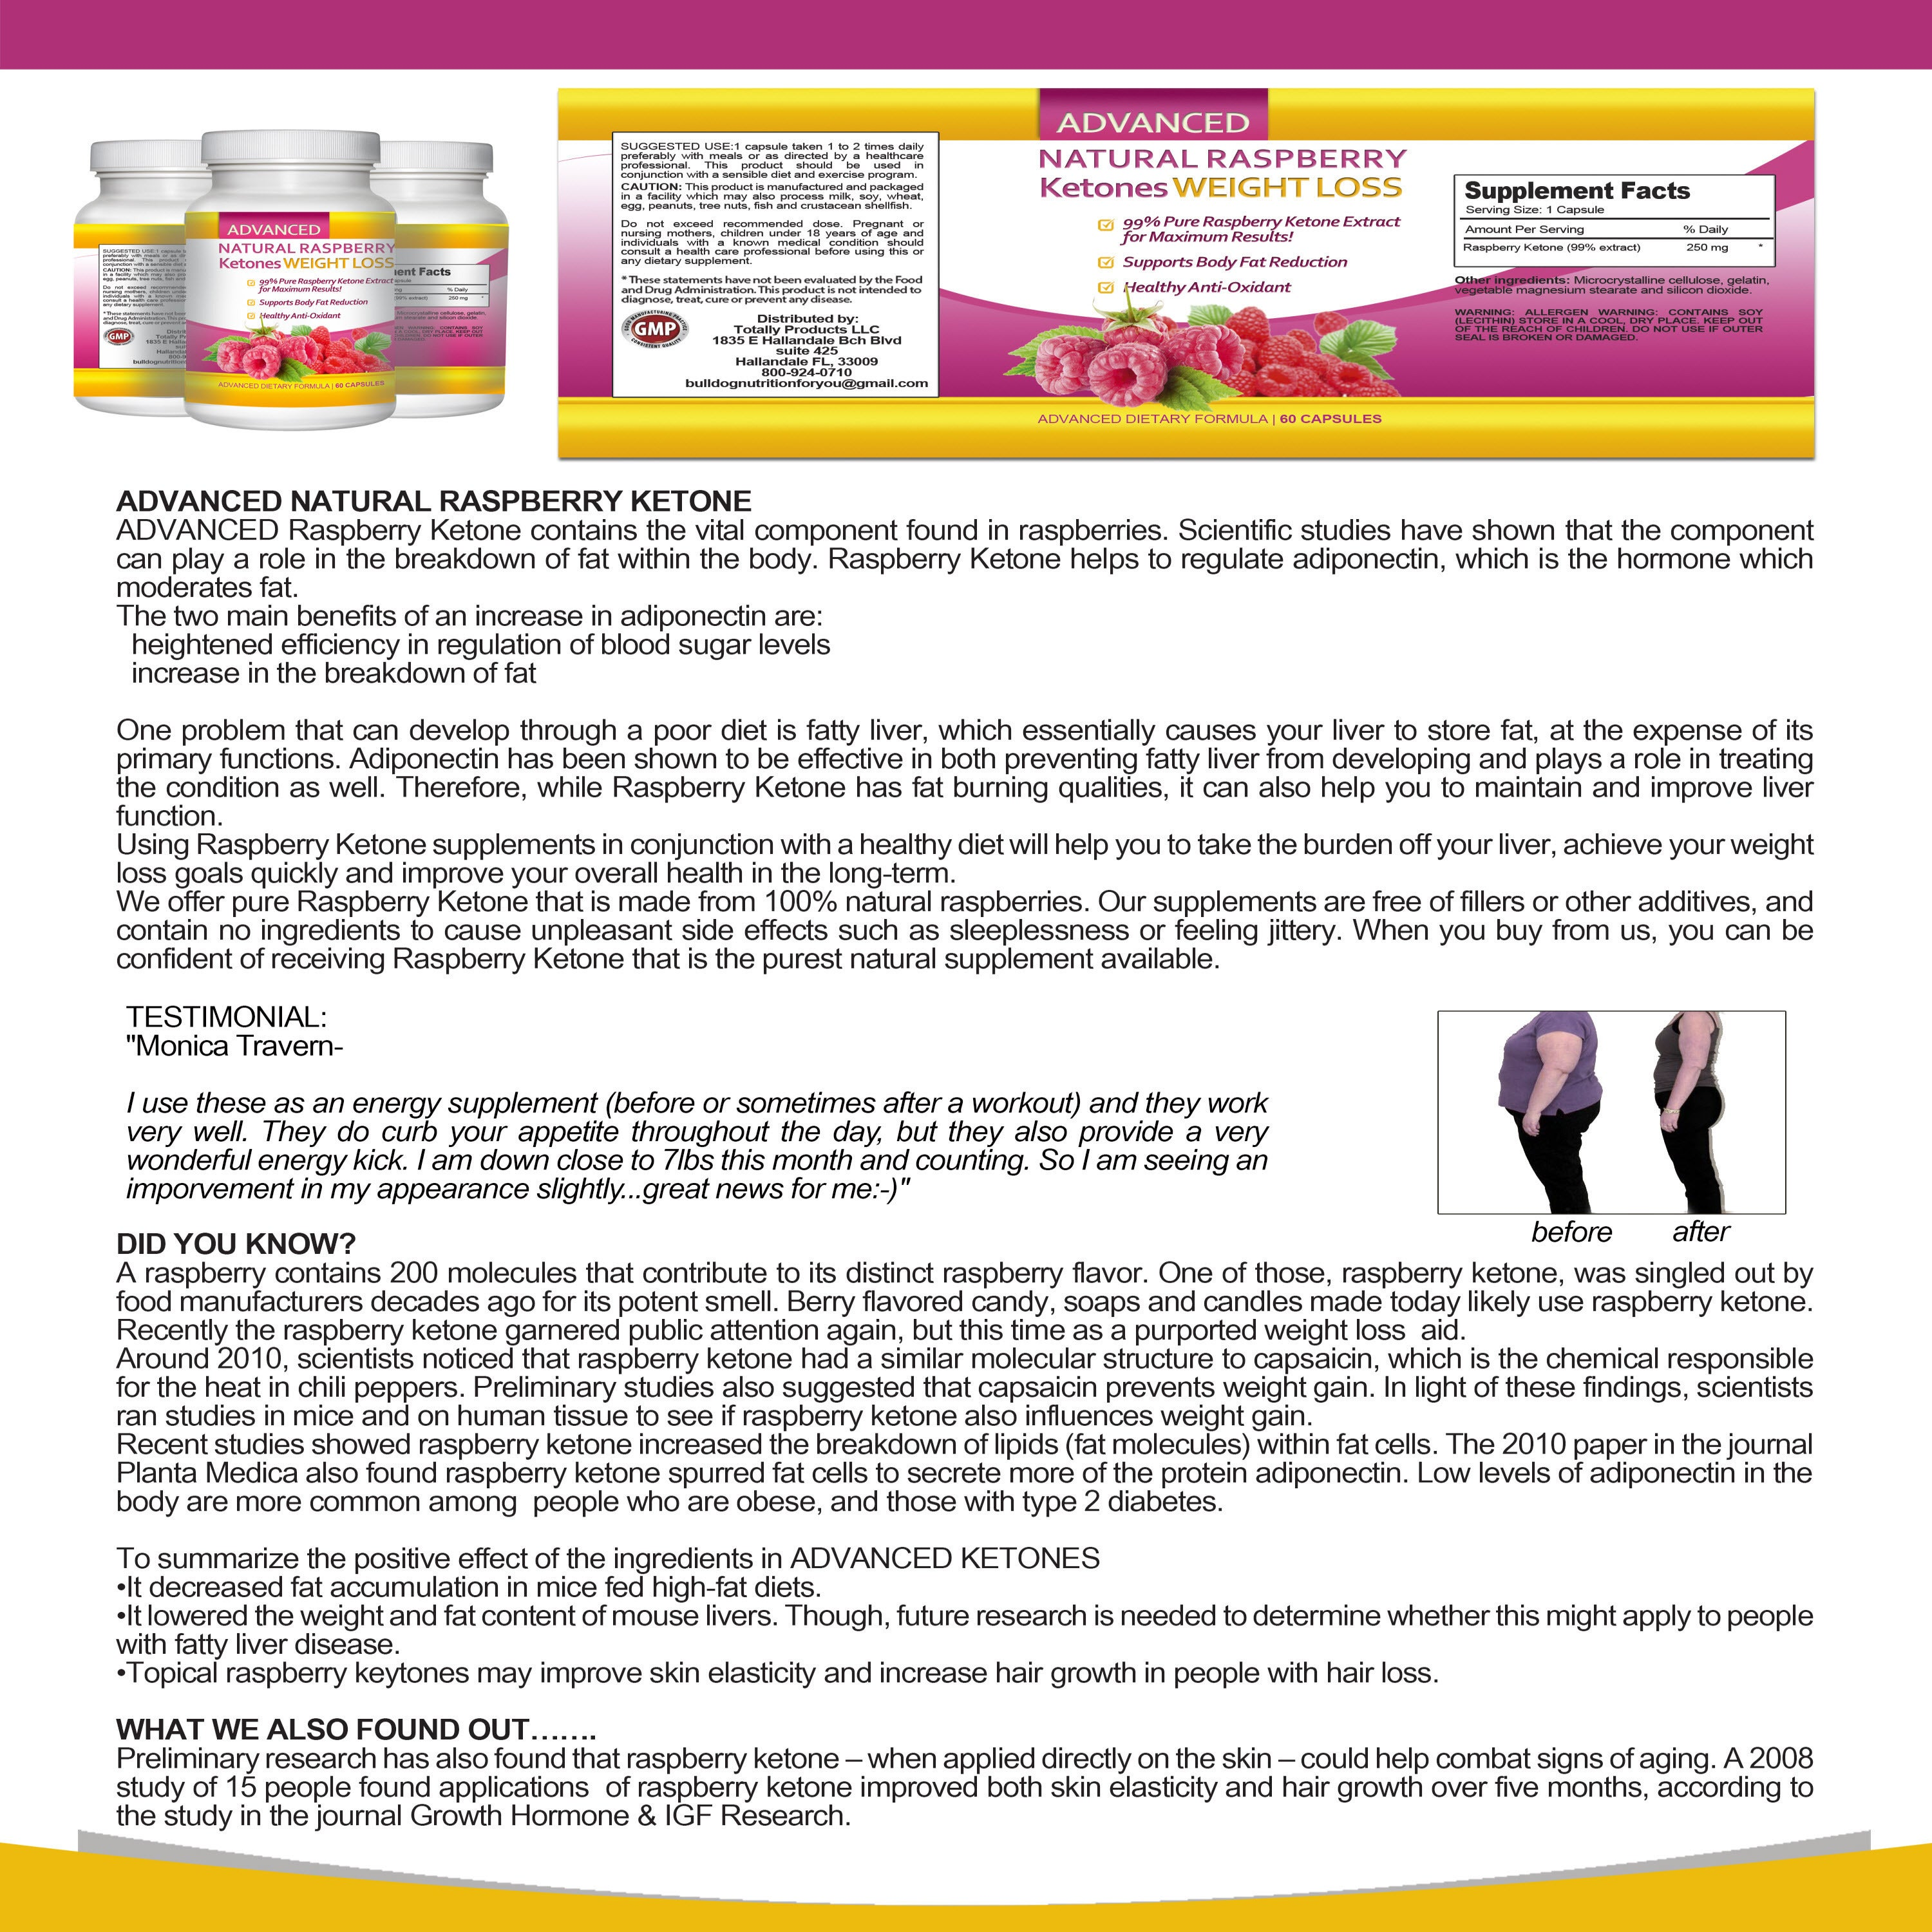 Shop Totally Products Raspberry Ketones Weight Loss And Fat Burning Supplement 60 Capsules Overstock 10023604